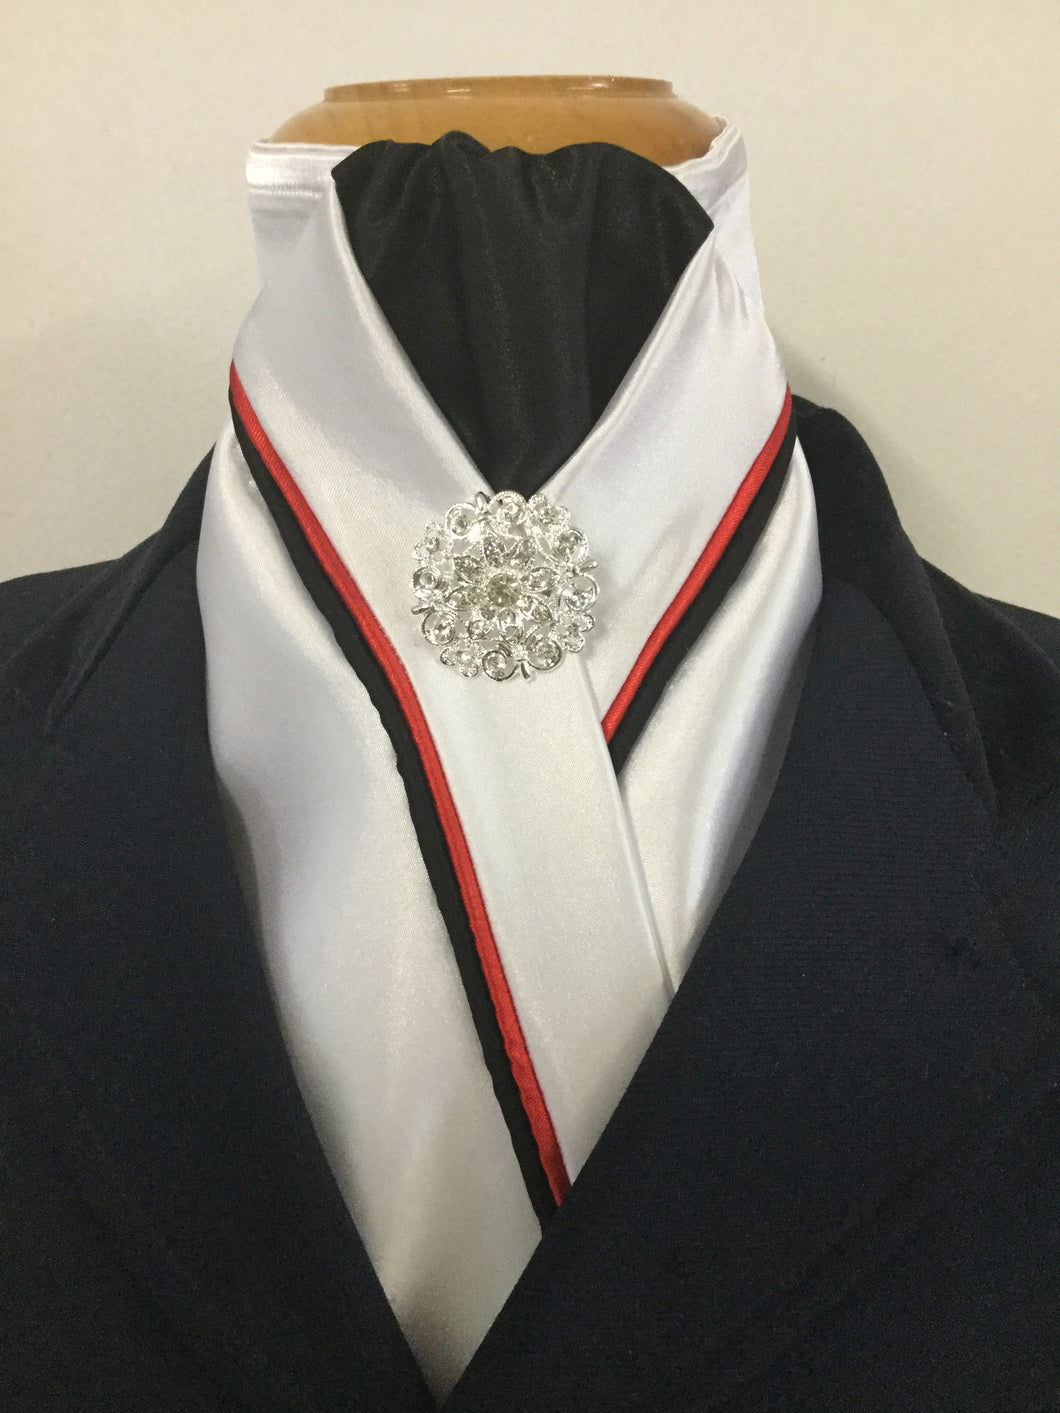 HHD Custom White Equestrian Stock Tie in Black & Red